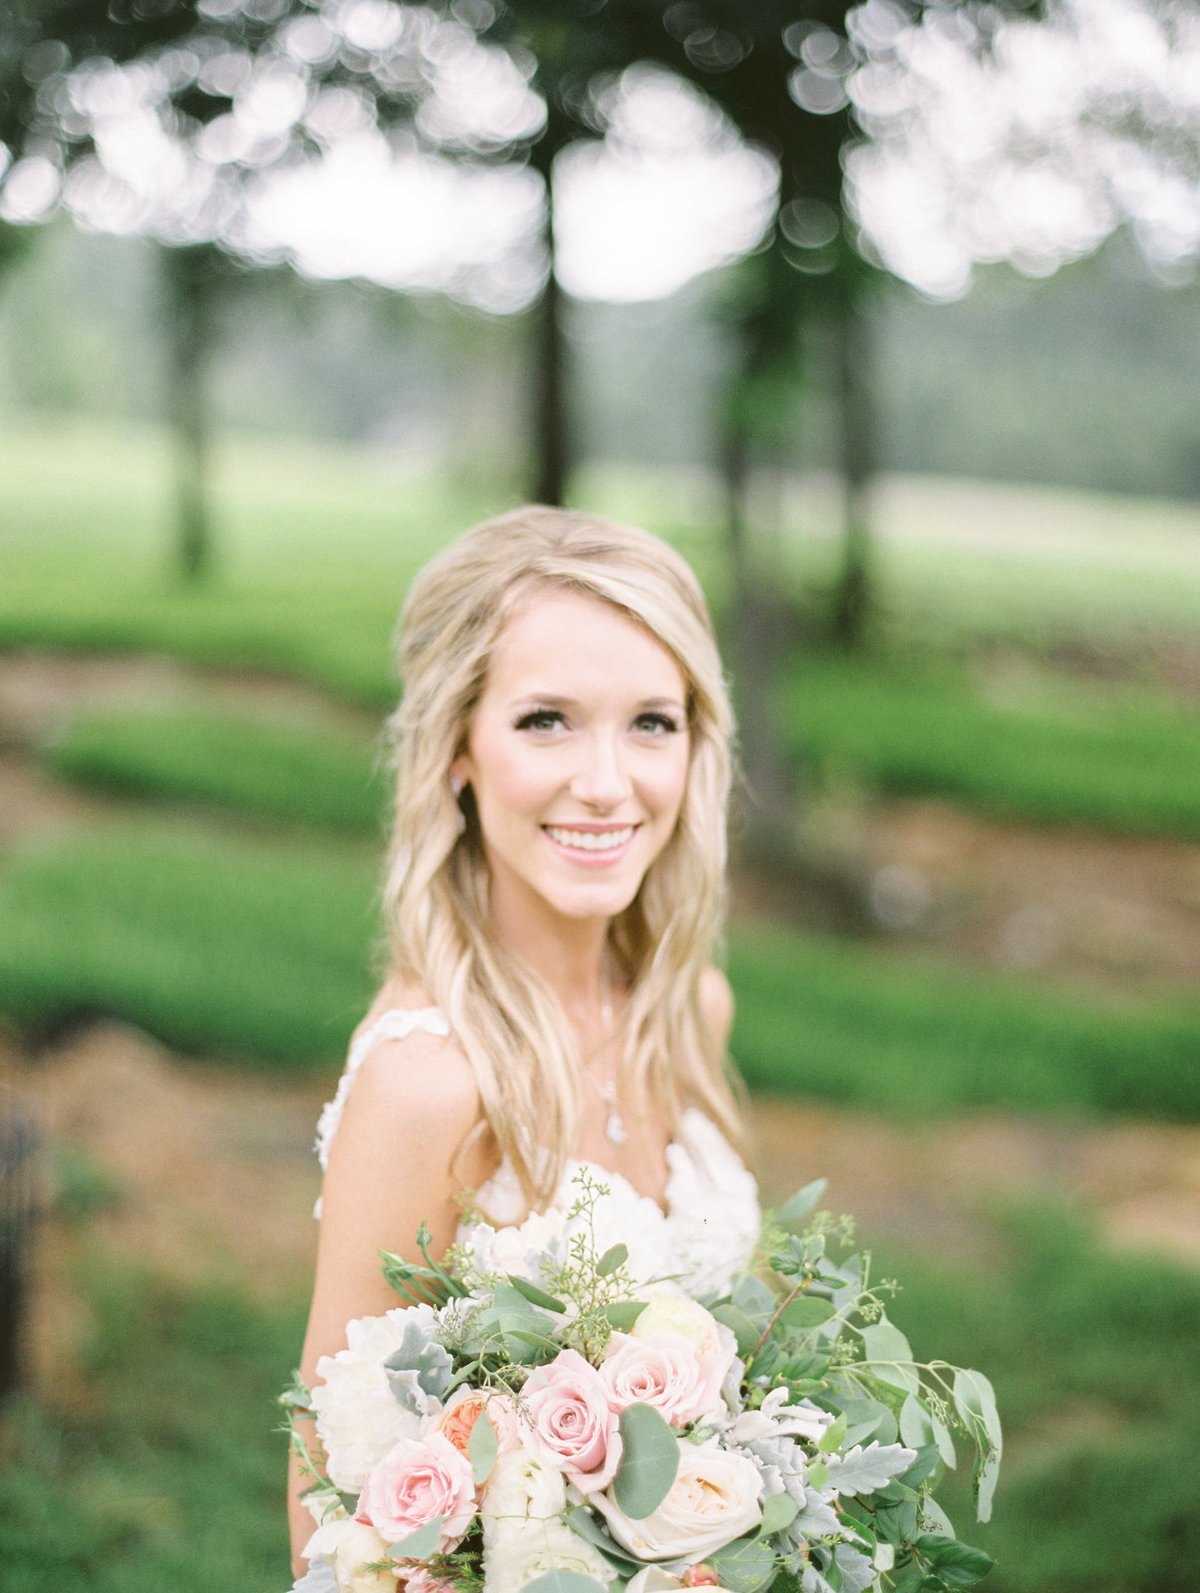 Sydney & William_Lindsay Ott Photography-100